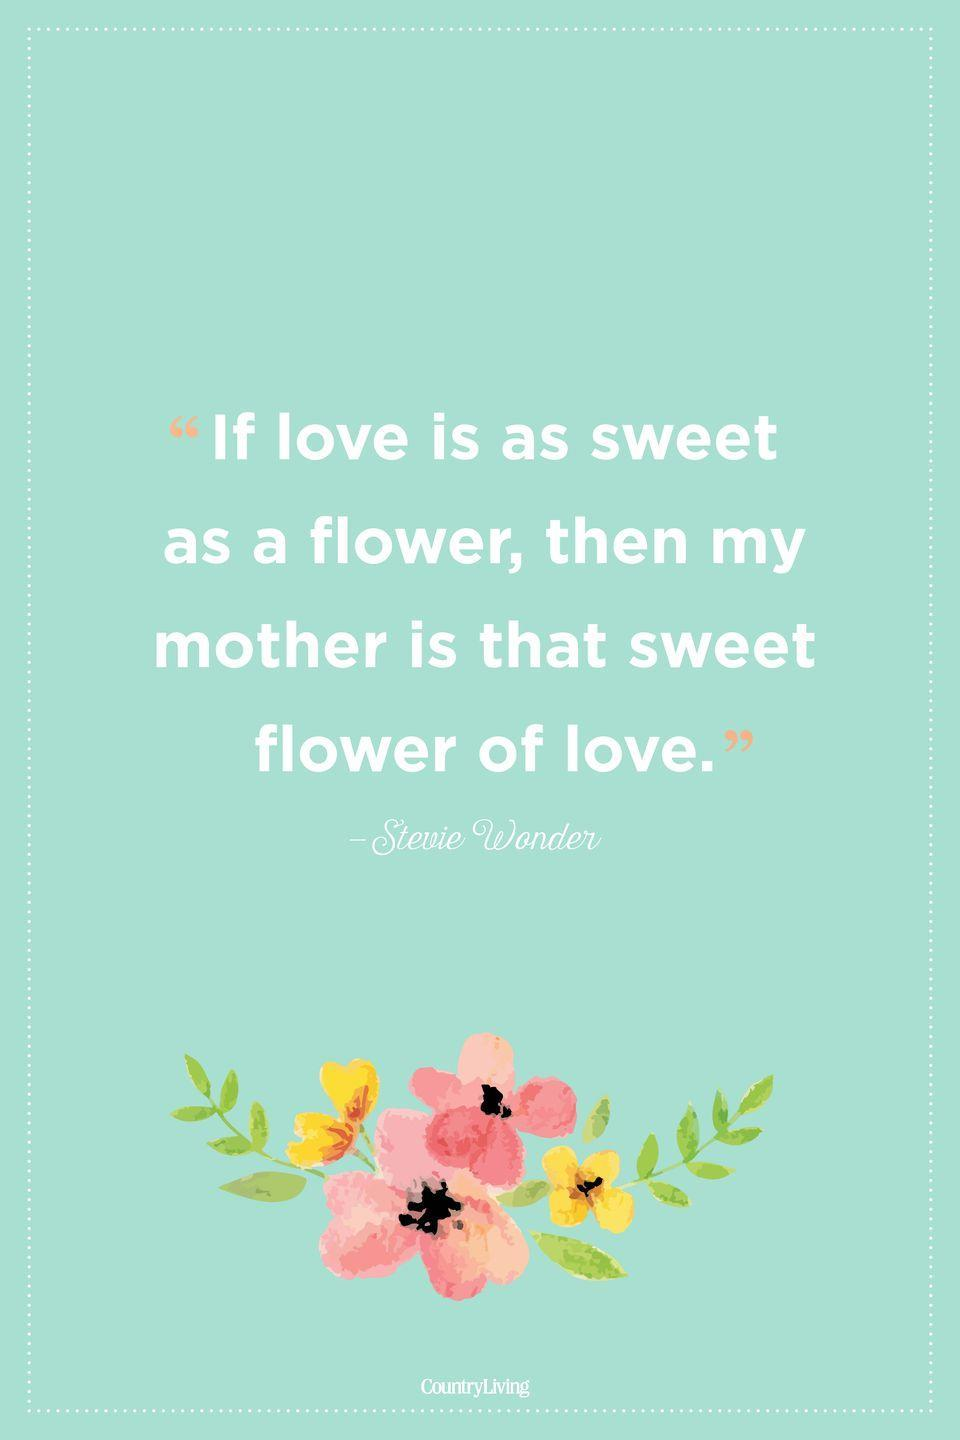 "<p>""If love is as sweet as a flower, then my mother is that sweet flower of love.""<br></p>"